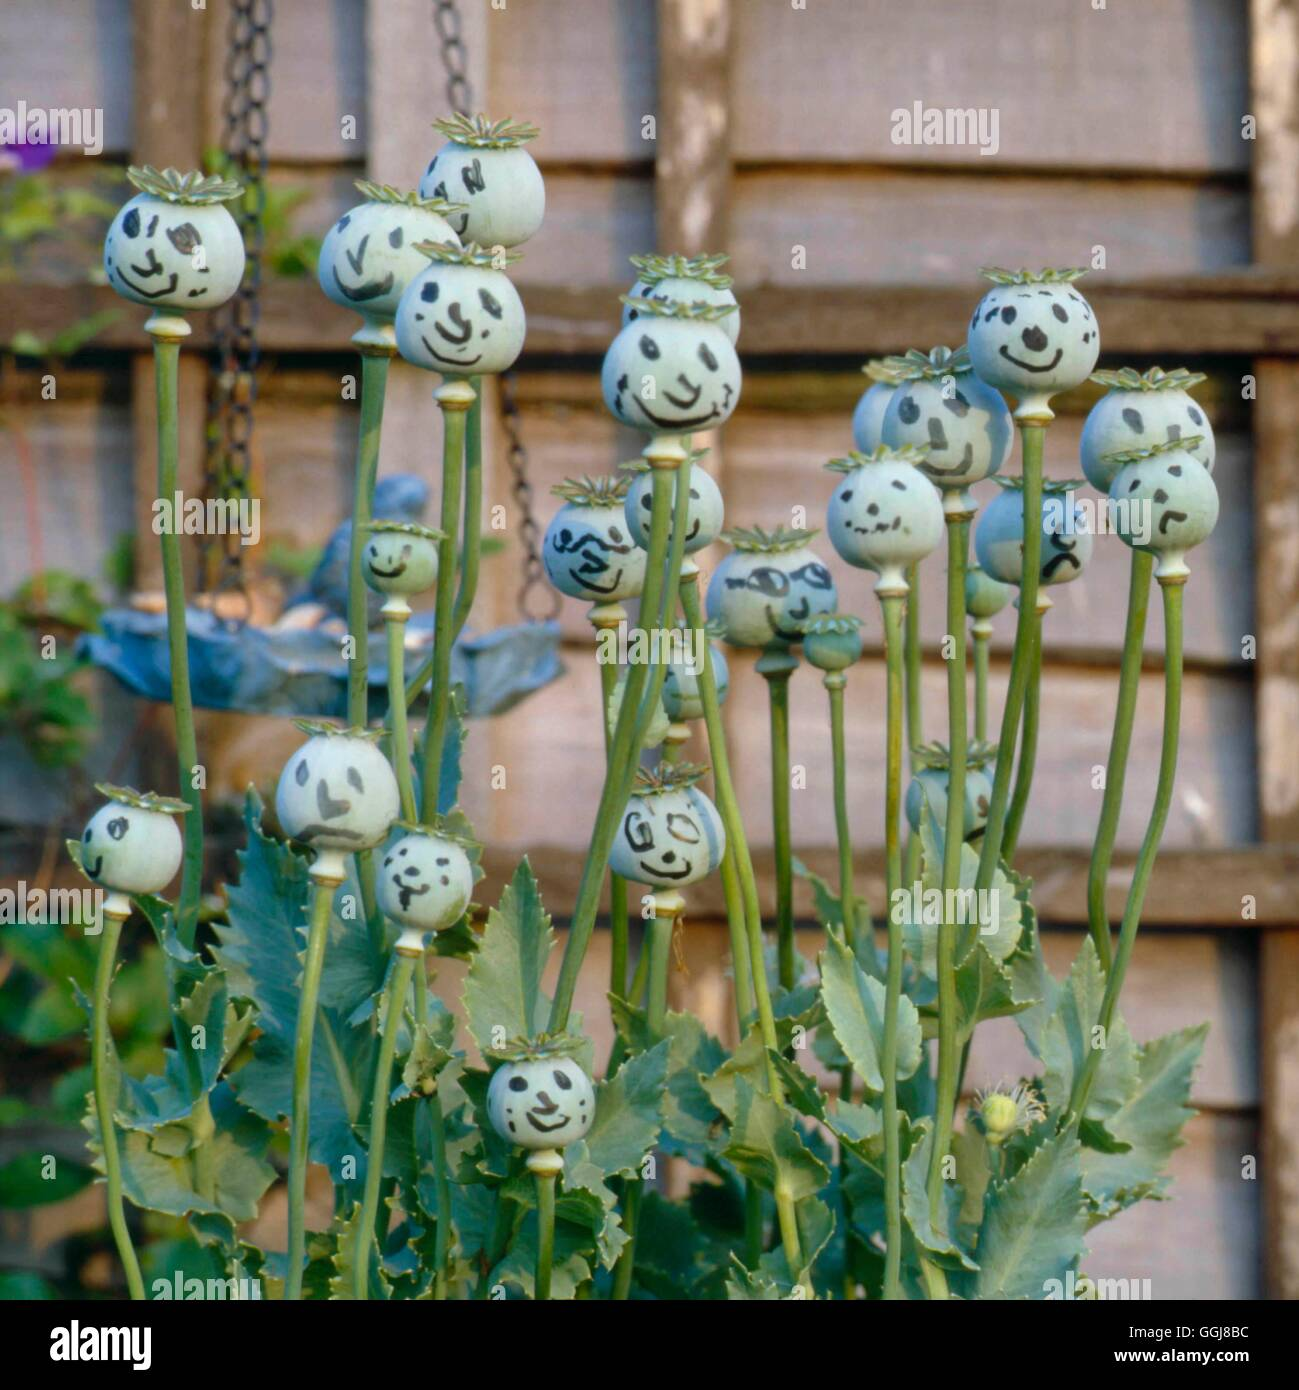 Image source plantsam com - Dried Plants Poppy Seed Heads Left To Dry Cause Source Of Ammusement Dri056991 Photos Hortic